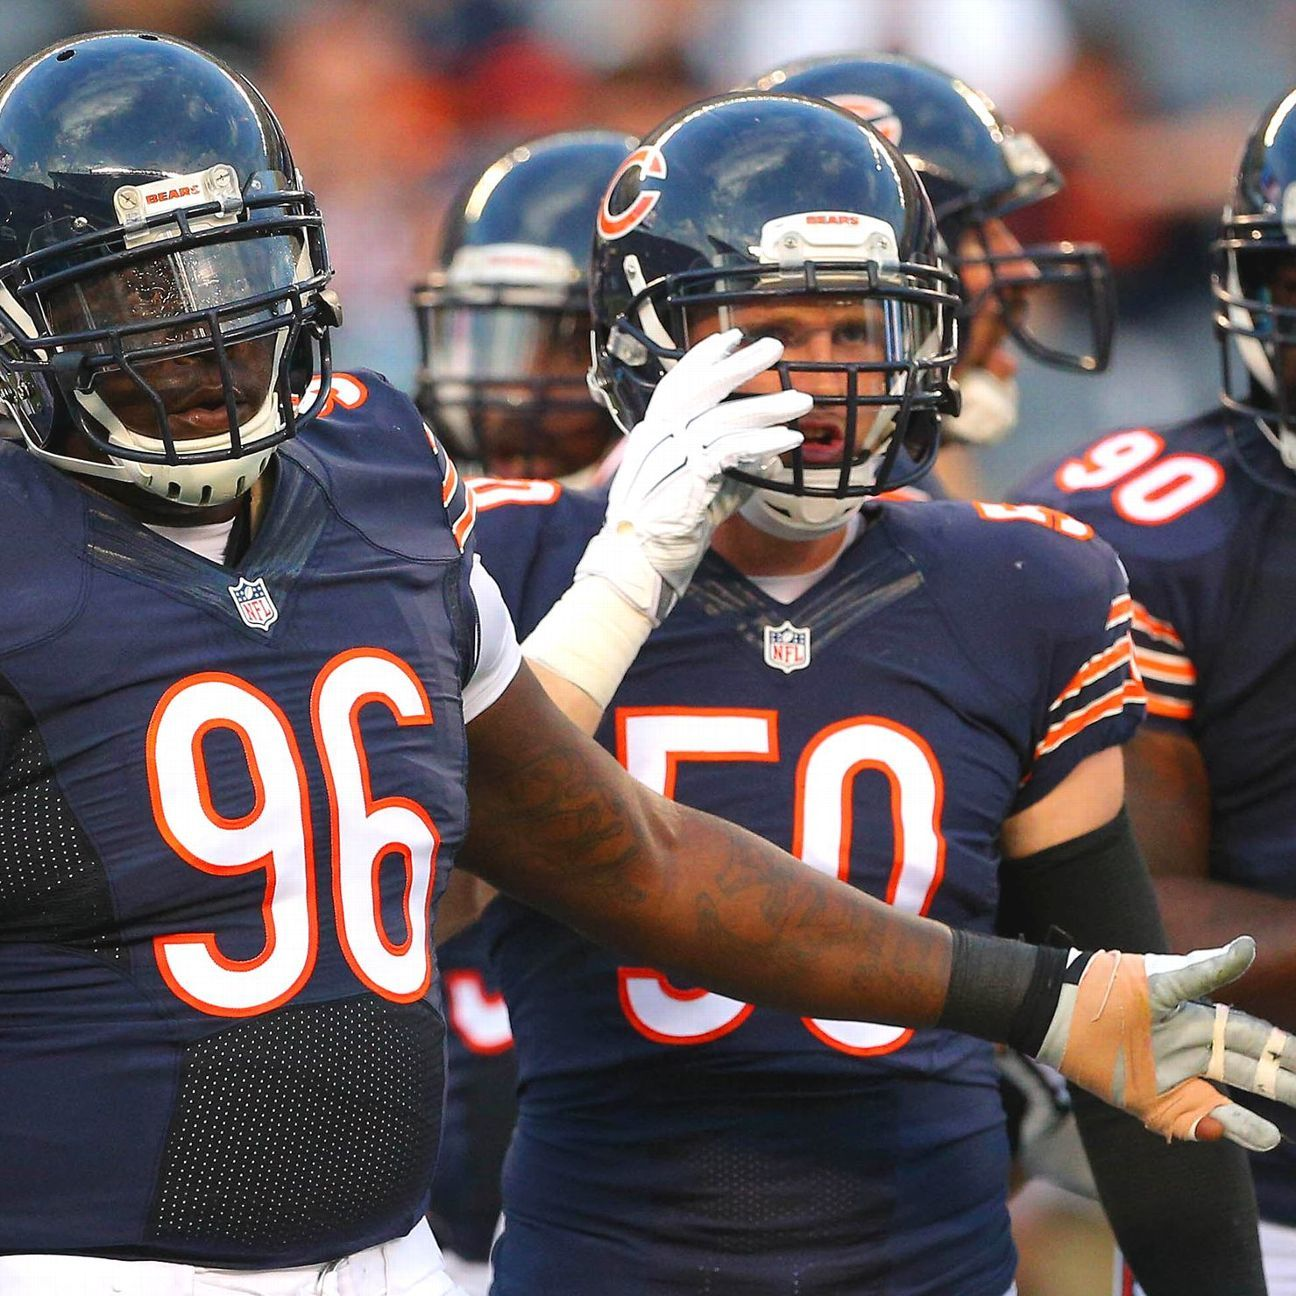 Chicago Bears Roster: Defensive Line Depth A Concern With Chicago Bears' First